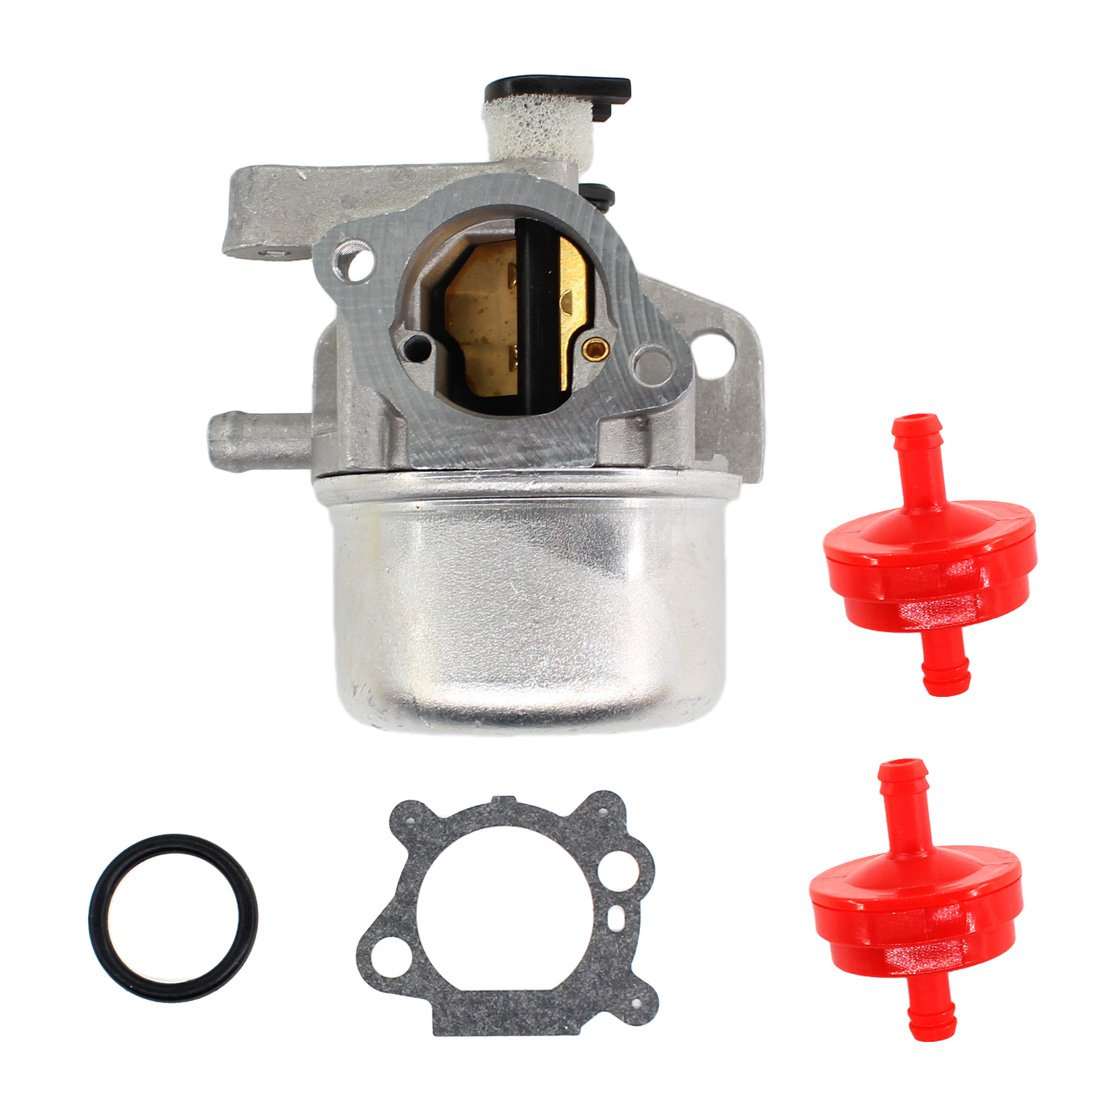 USPEEDA Carburetor for Husky 22 Ton Log Splitter W/6.50 Hp Briggs & Stratton LS401221TS